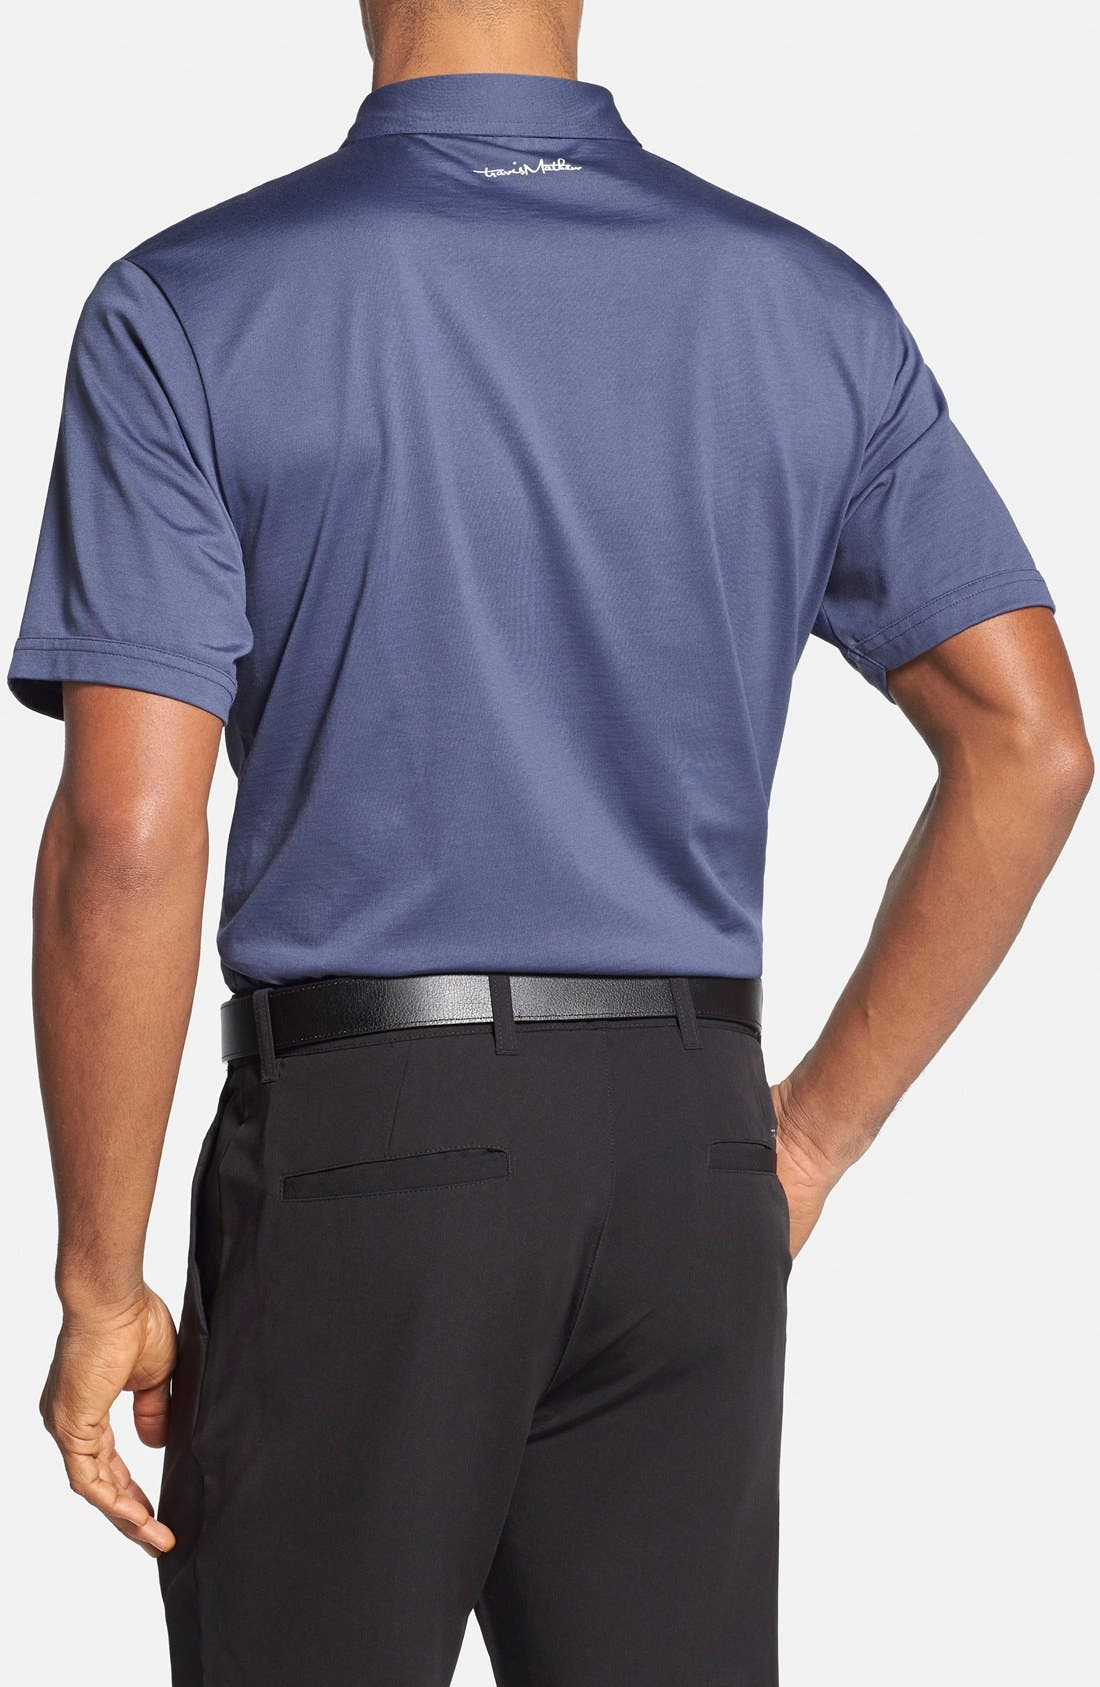 Alternate Image 2  - Travis Mathew 'OG' Trim Fit Performance Golf Polo